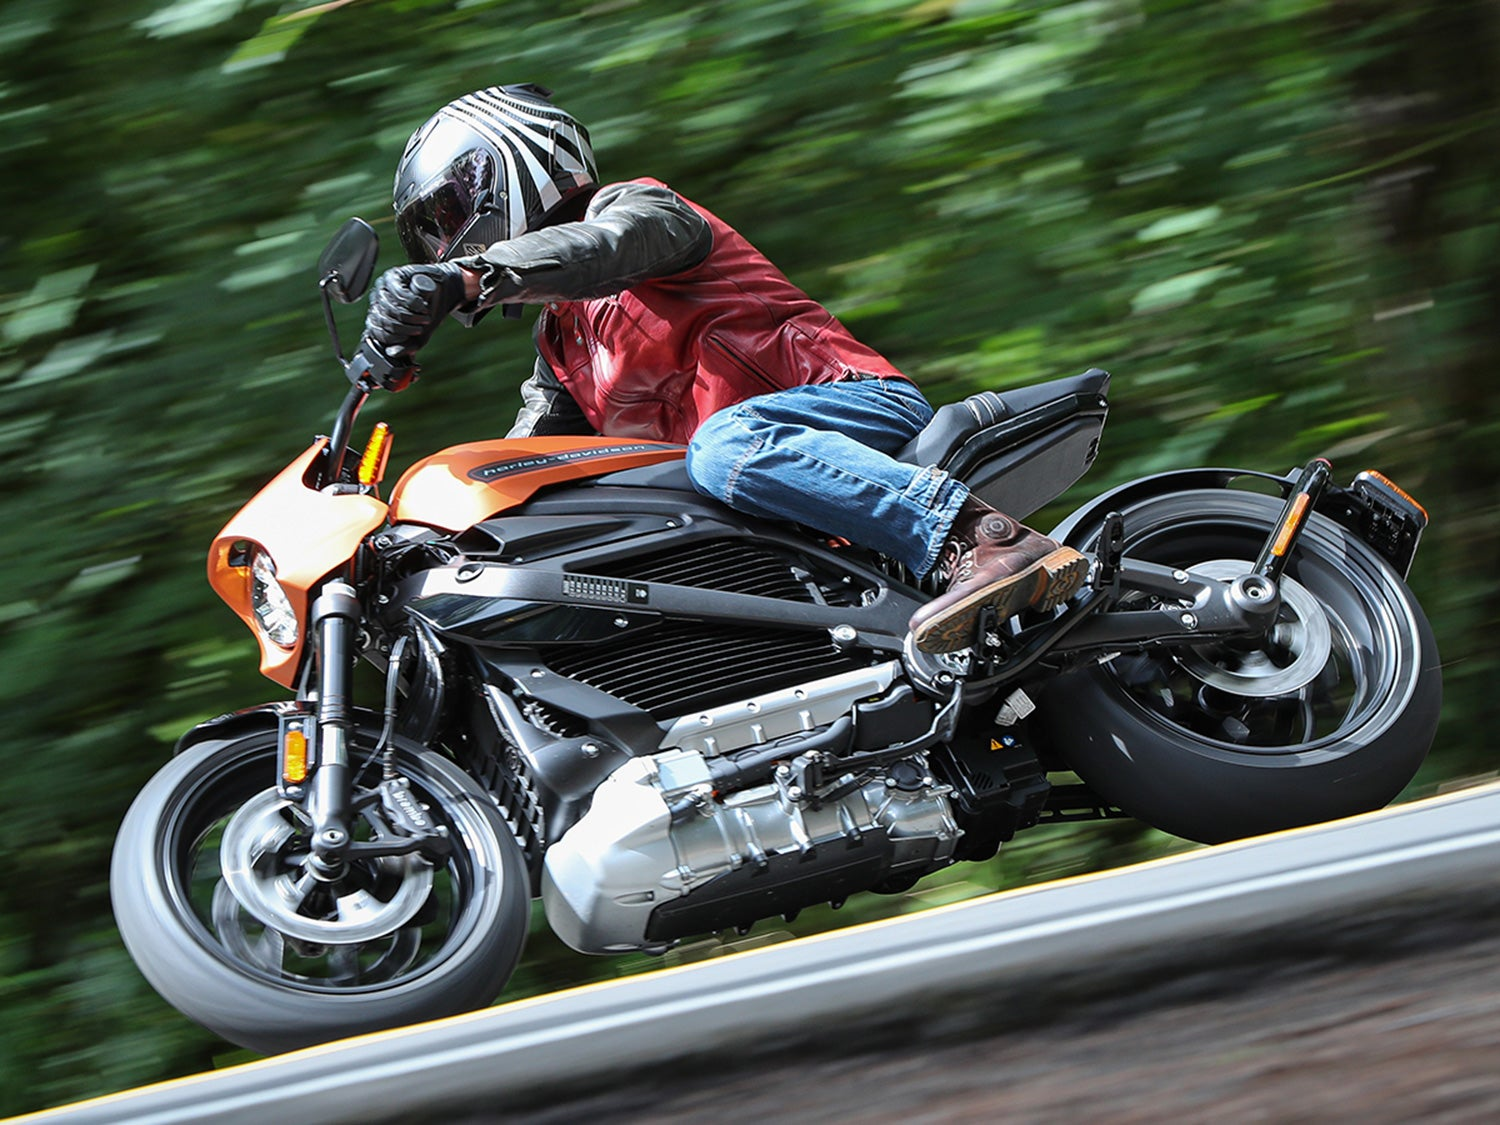 First ride: Harley-Davidson's new all-electric motorcycle